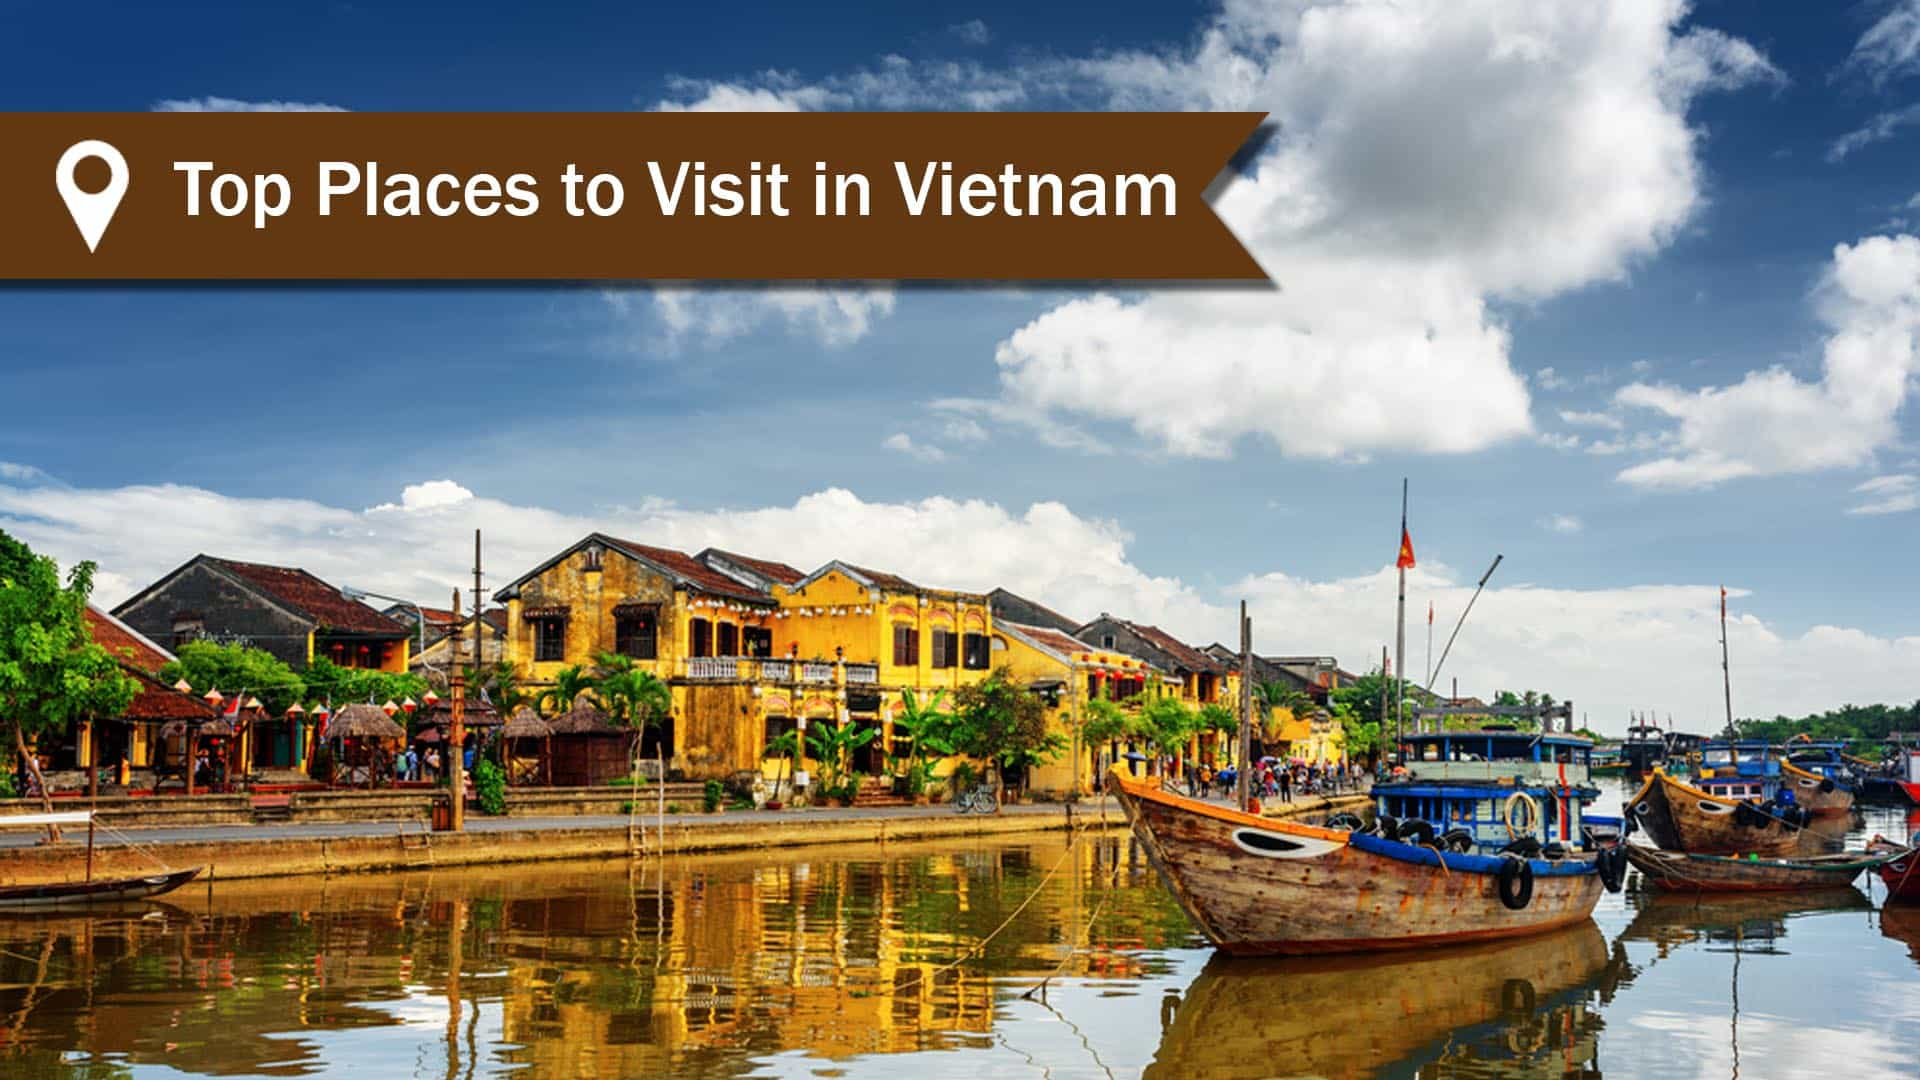 Top Places to Visit in Vietnam - Travel Life Experiences